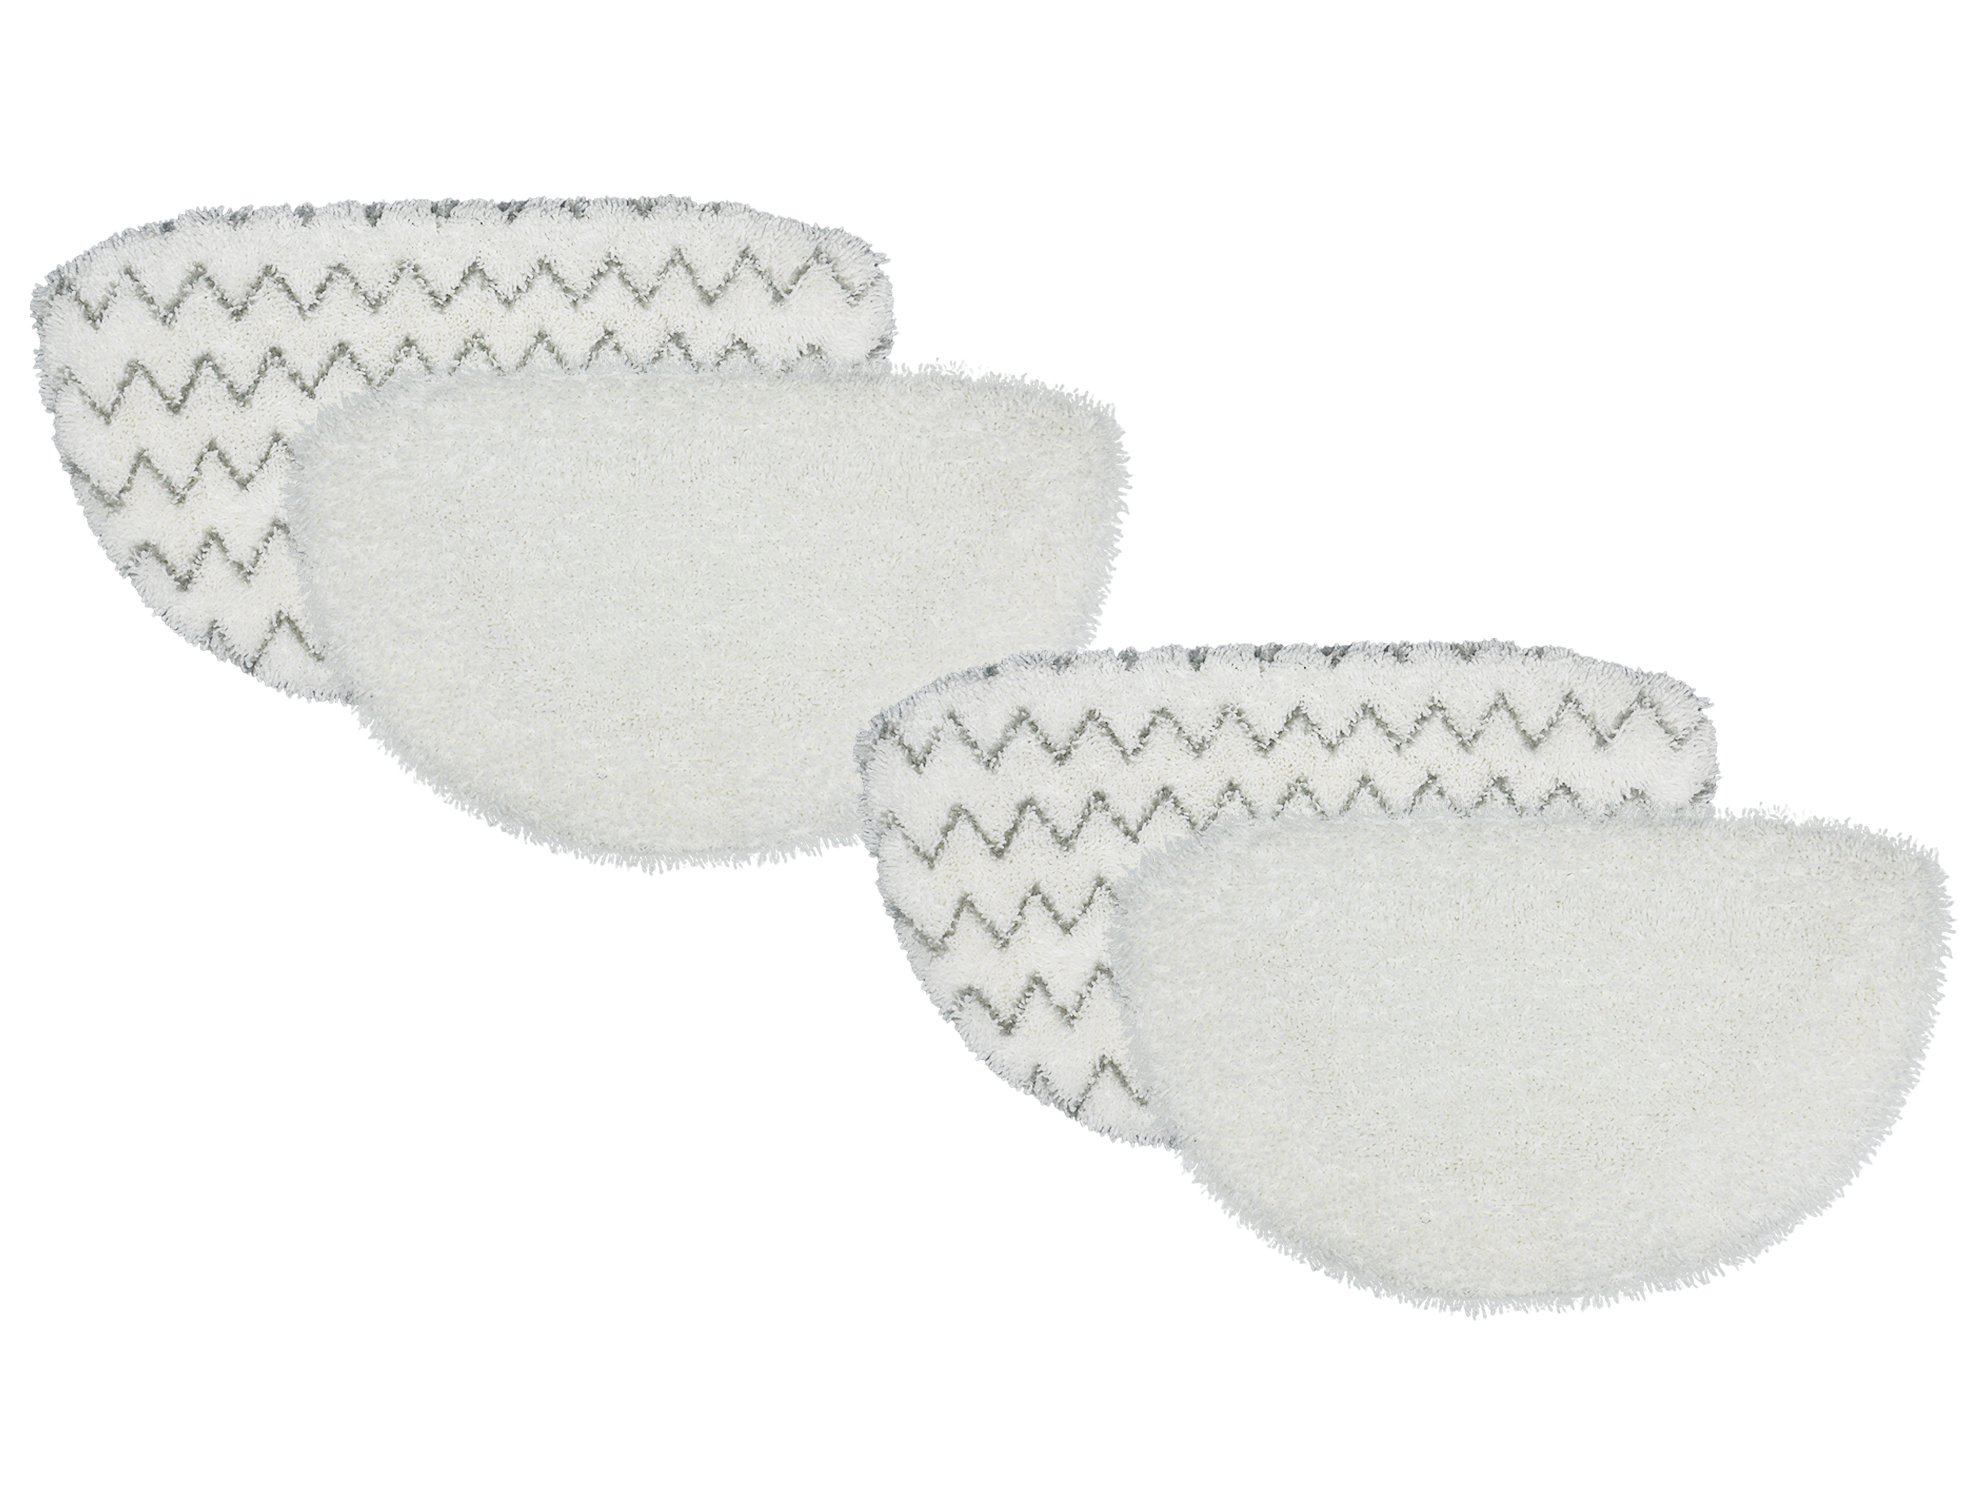 Bissell PowerFresh Compatible Replacement Steam Mop Pads fits Bissell 1940 Series, 19404 Pet Steam Mop, 2075A & 2181 Slim Steam Mop, 1806 Deluxe Steam Mop, 15441 Pet Lift-Off Steam Mop, 4-Pack